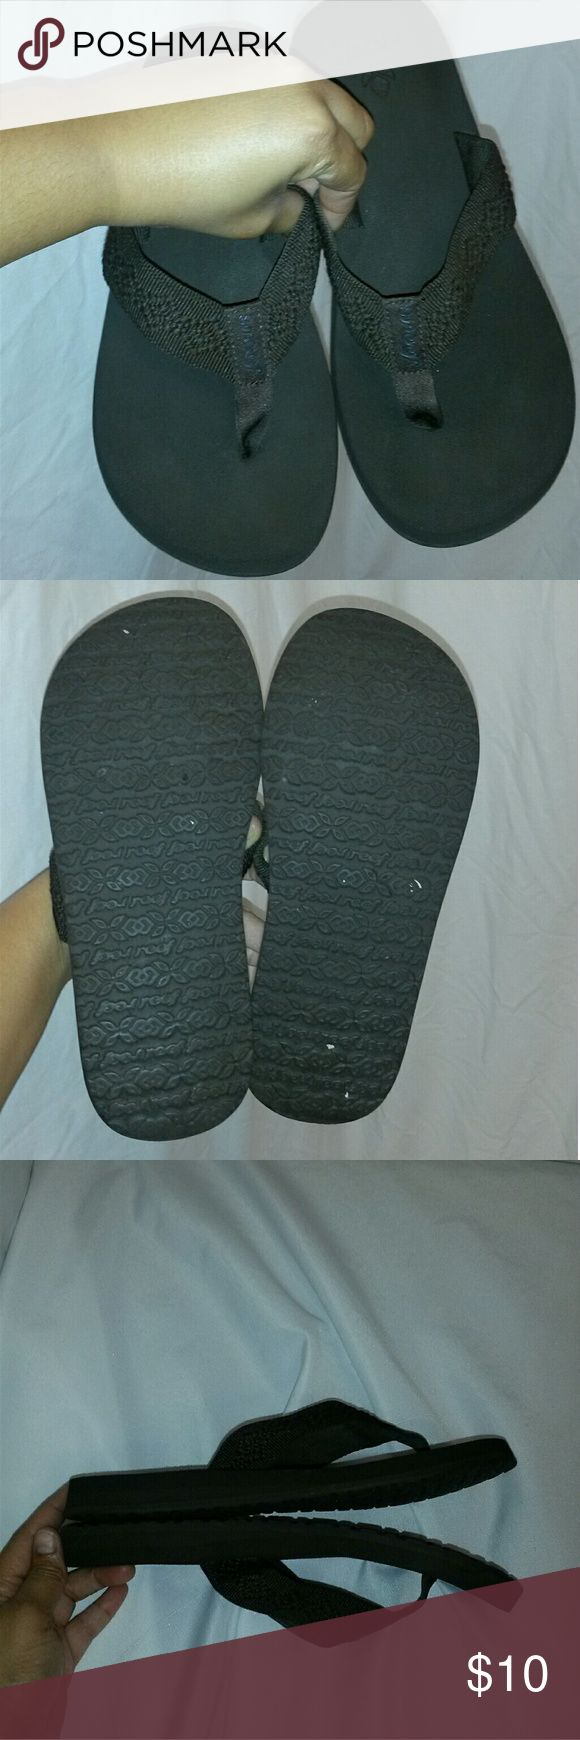 Womens reef flip flops Womens reef flip flops size 8 good condition Reef Shoes Slippers